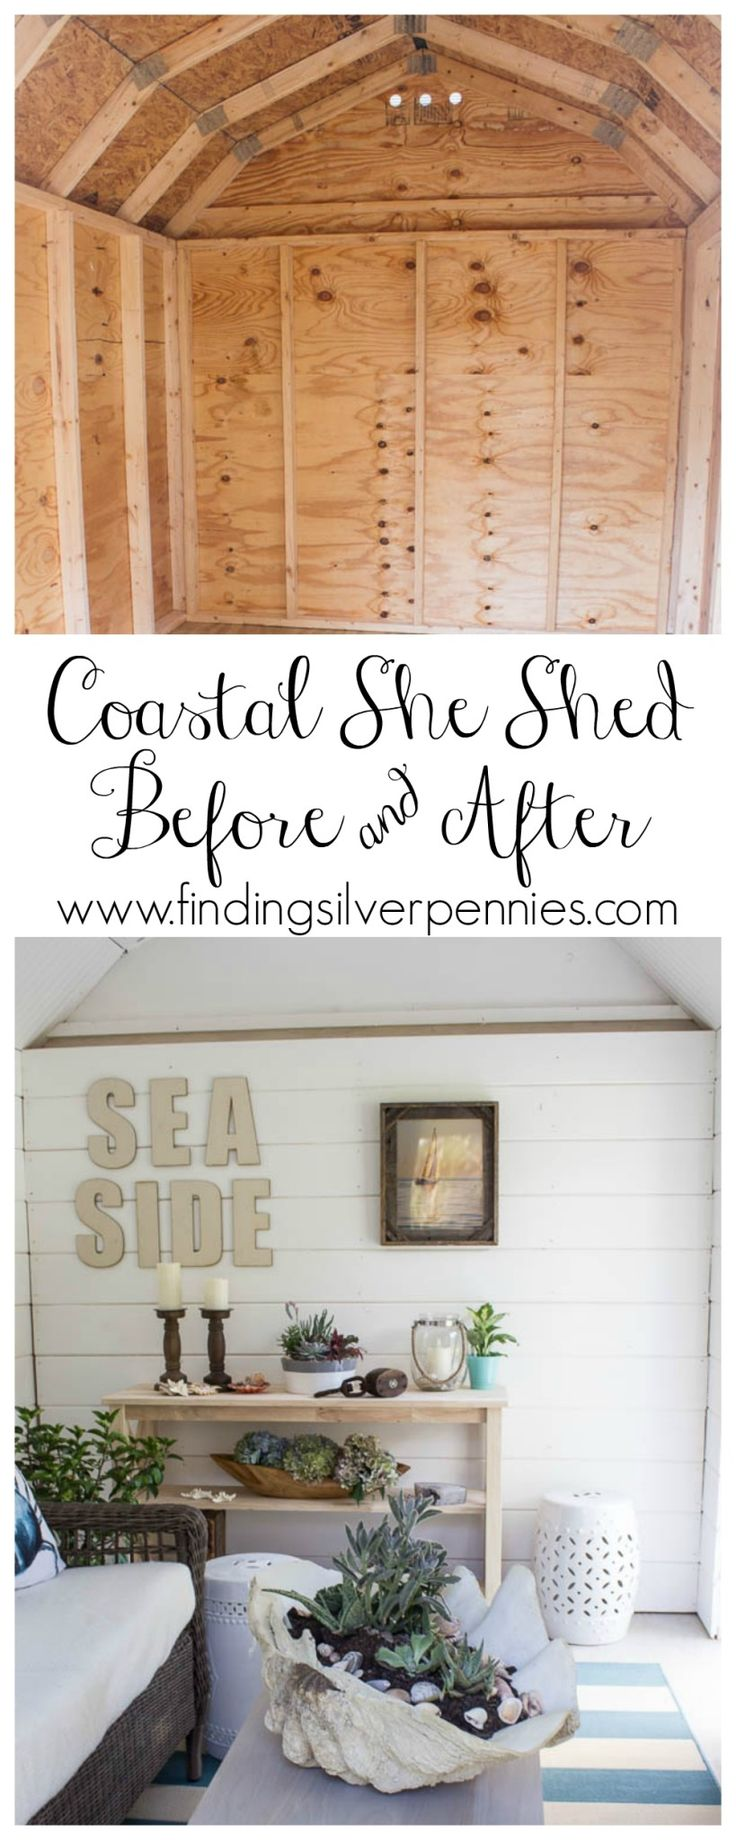 Interior of Coastal She Shed Before and After with @homedepot #sponsored